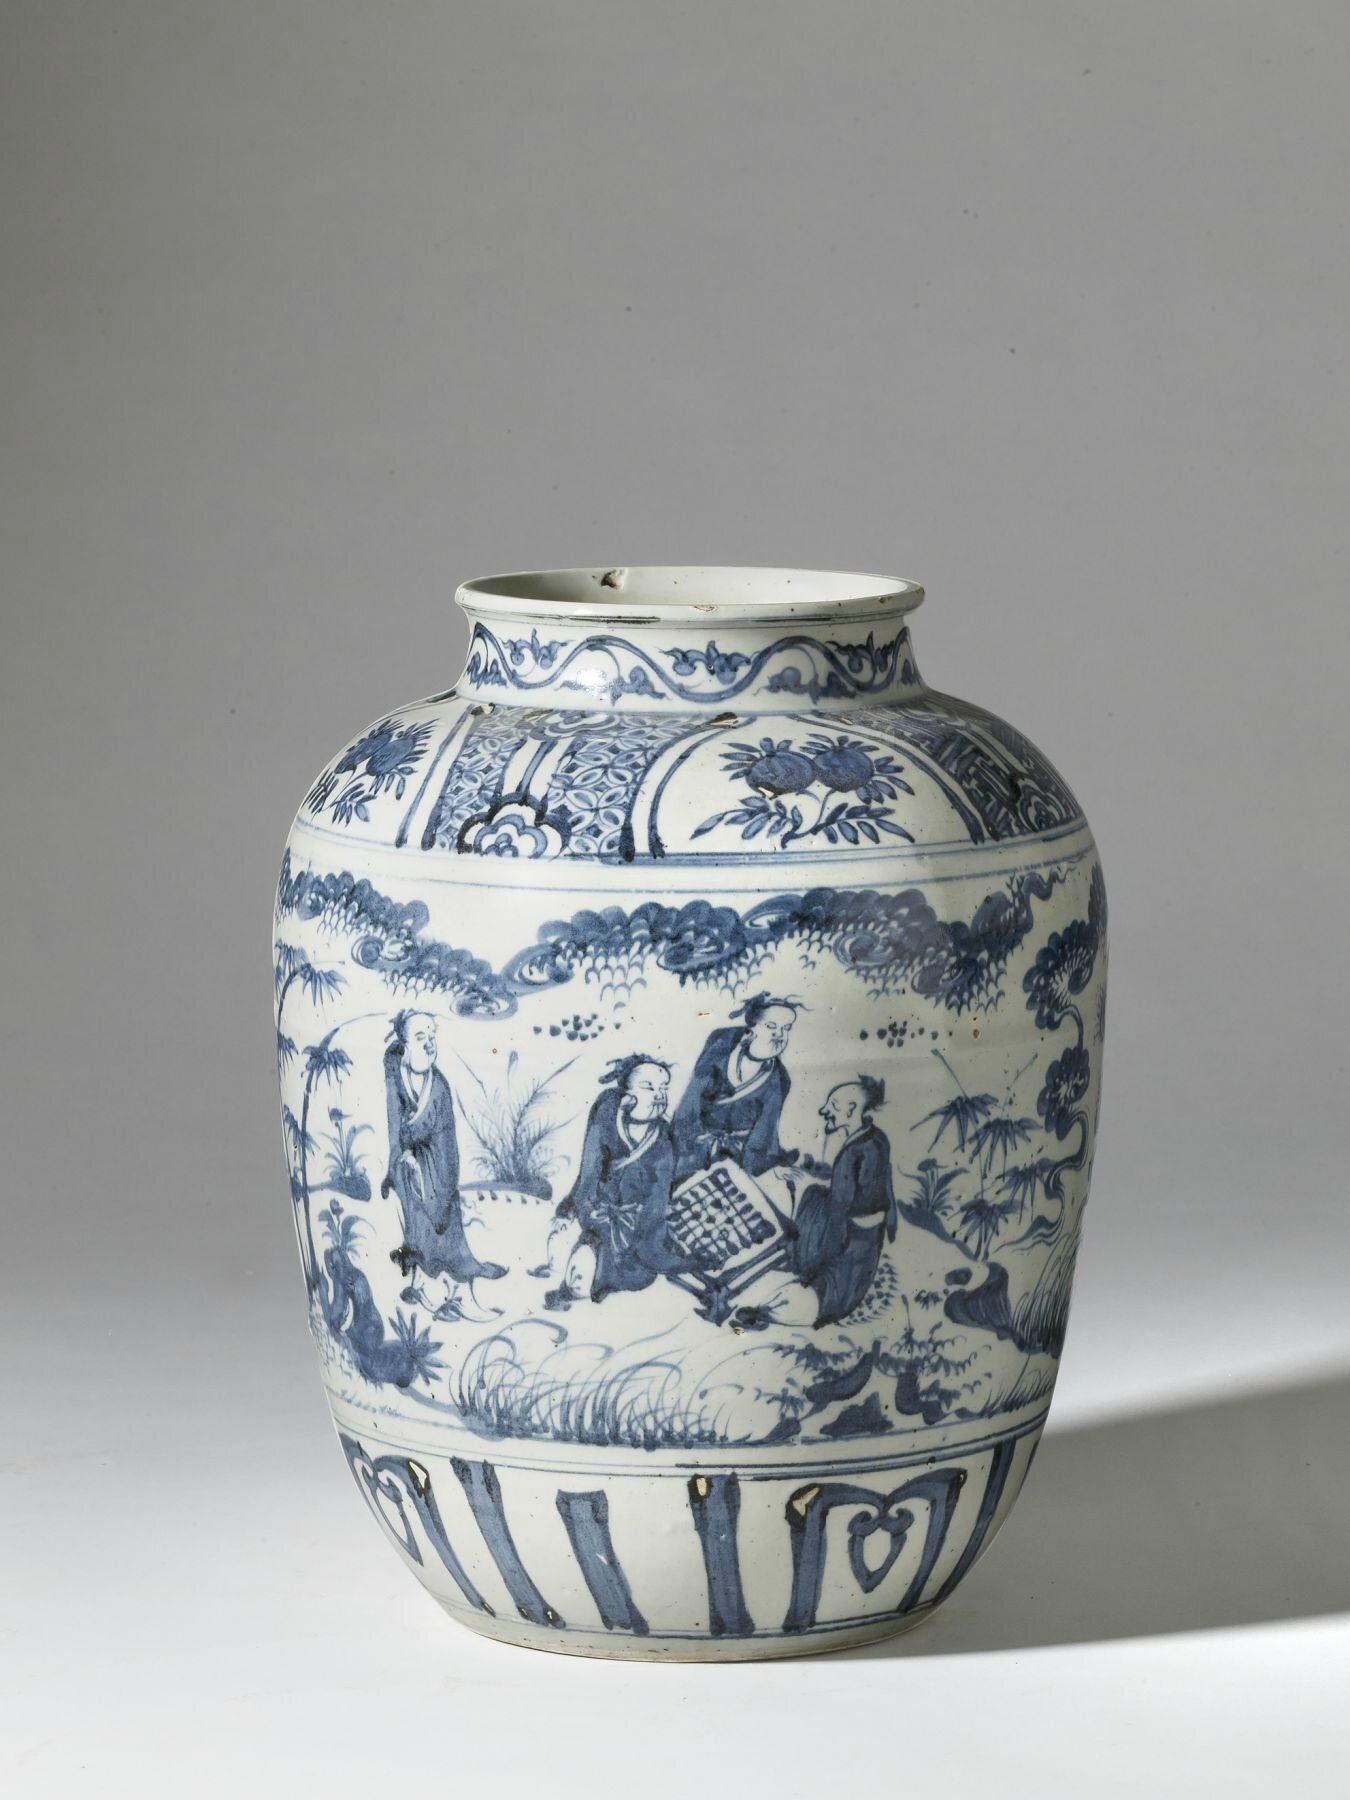 A large blue and white vase, China, Ming dynasty, 16th century